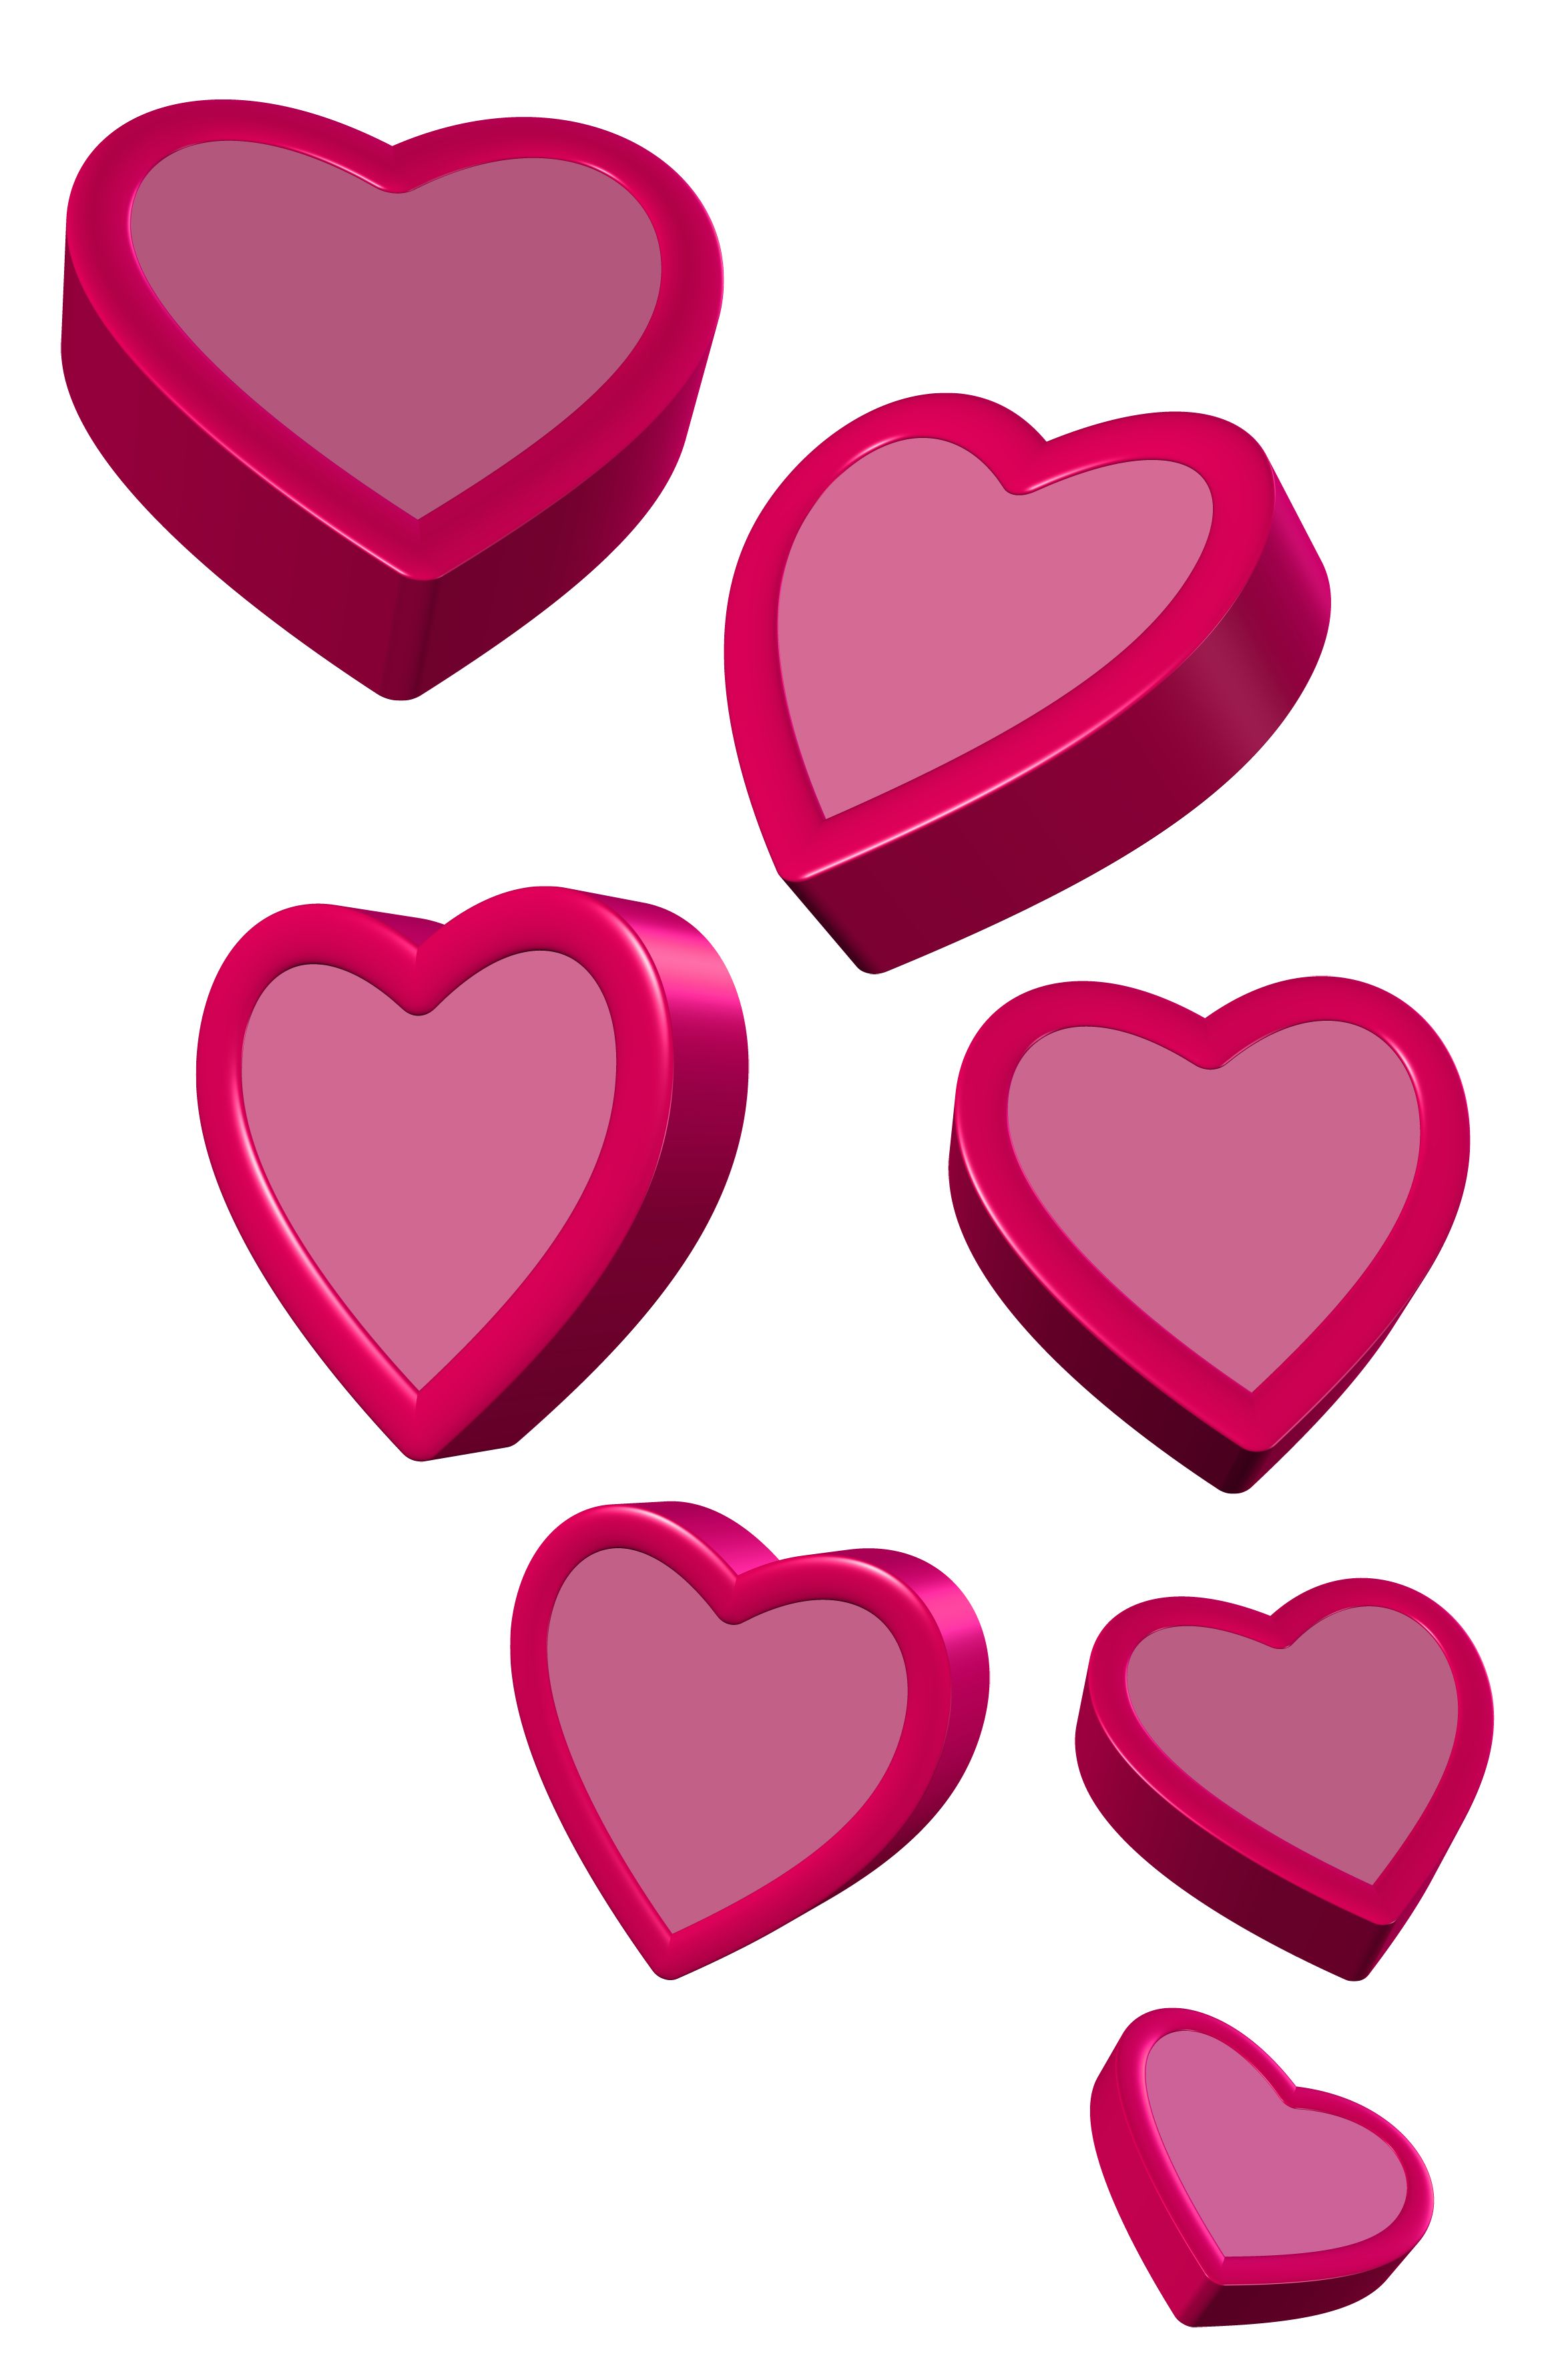 small resolution of heart clip art image from http gallery yopriceville com var albums